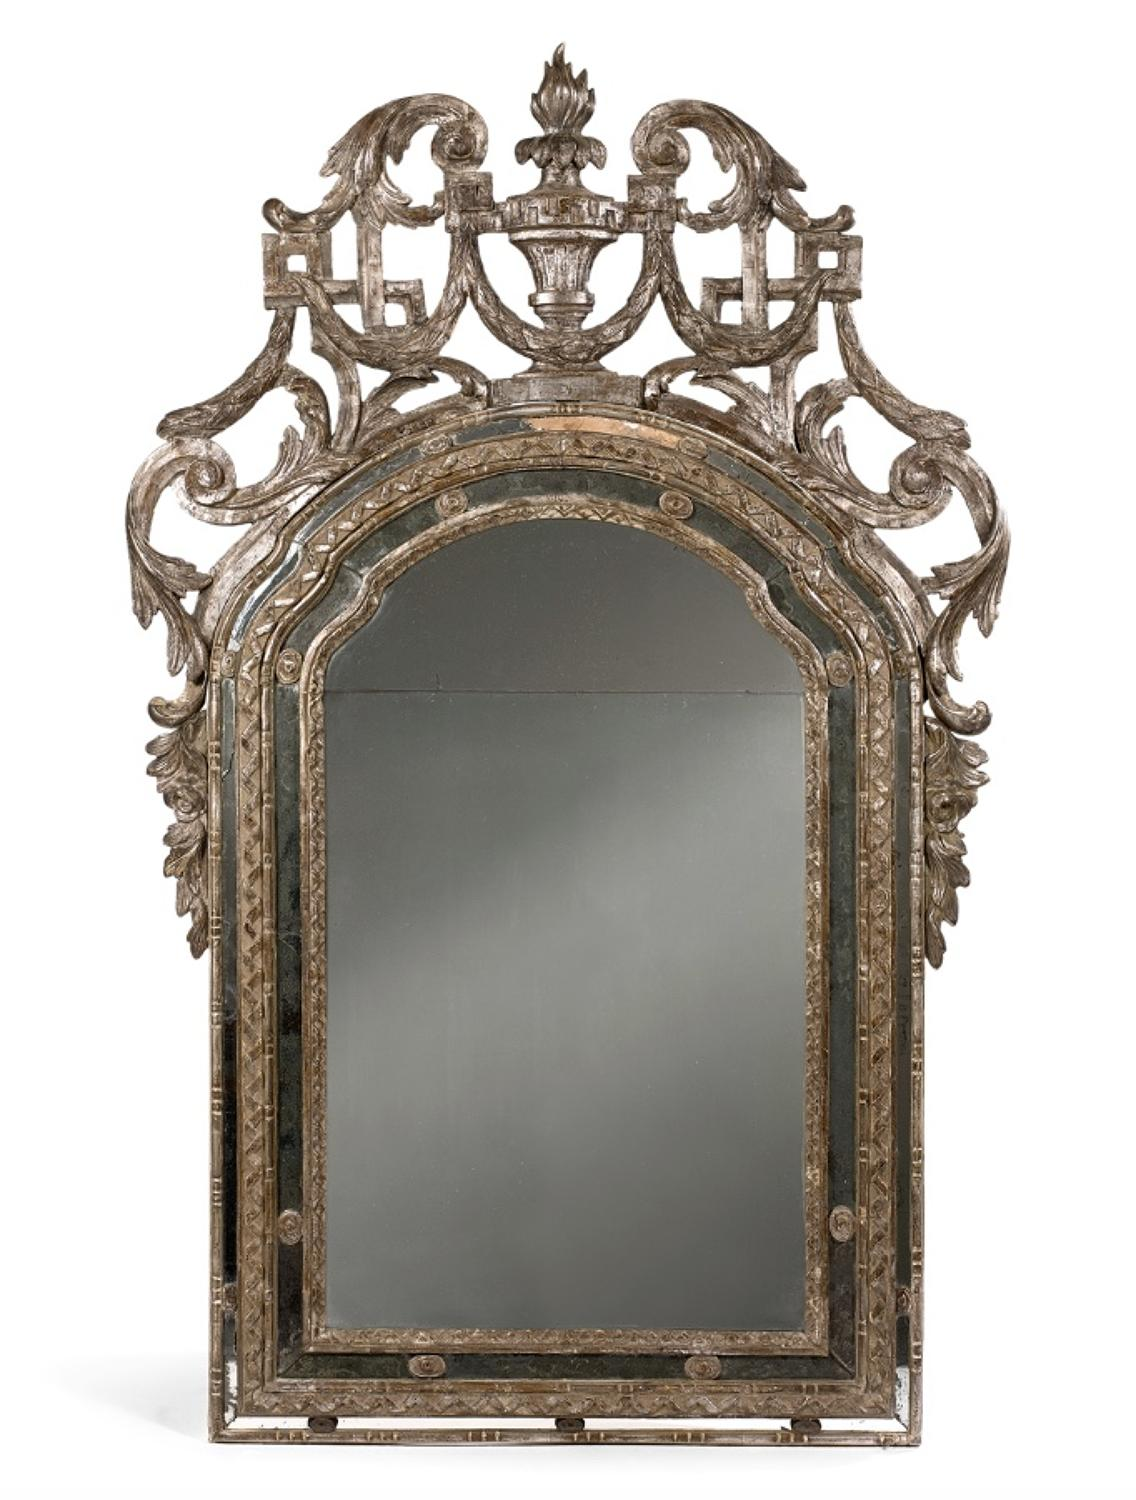 A 18TH CENTURY ITALIAN SILVER GILT BAROQUE MIRROR